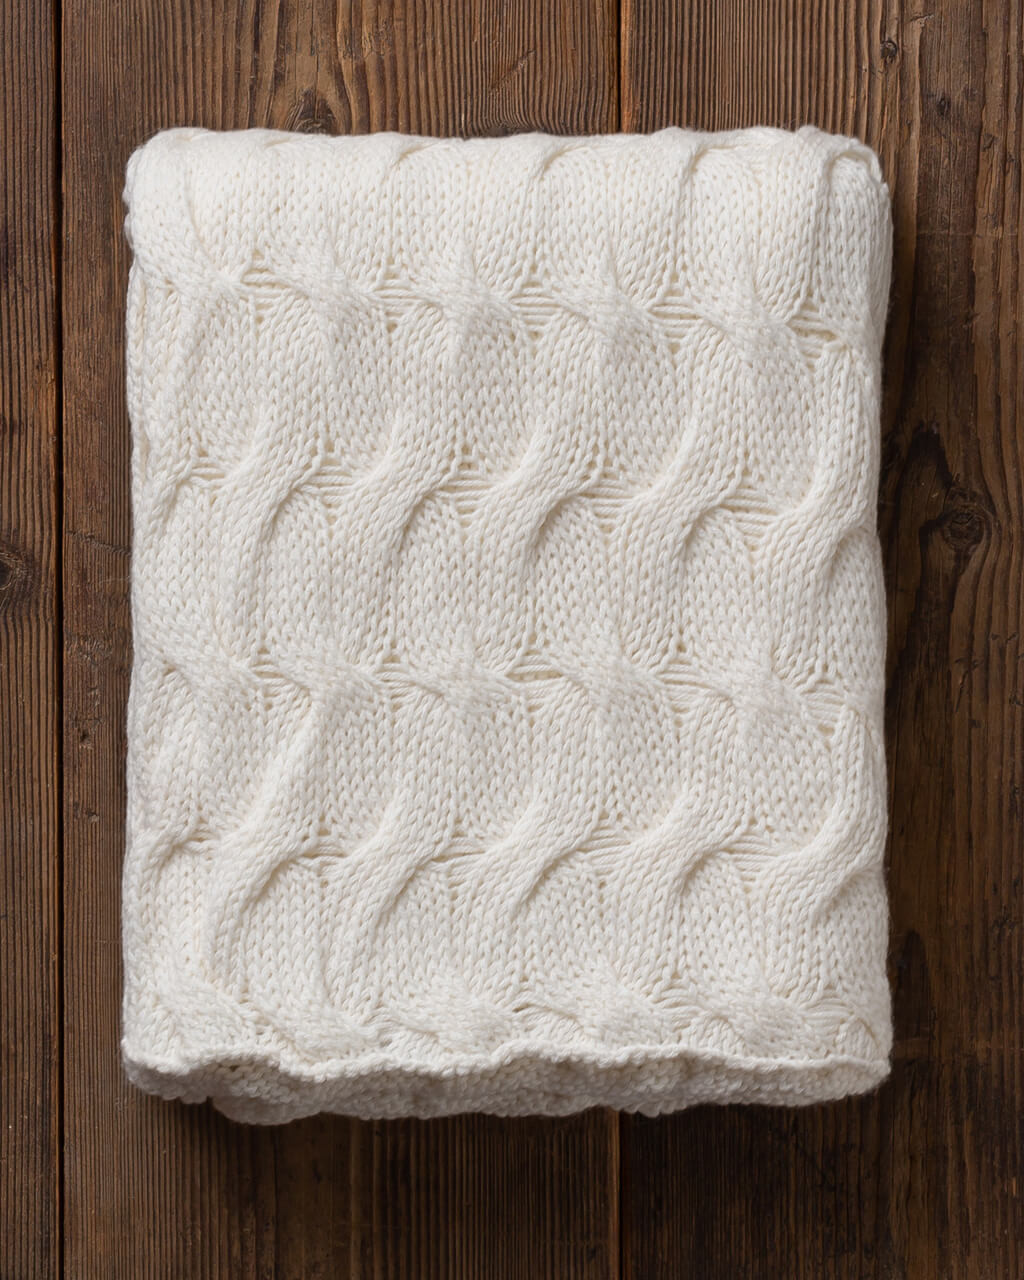 Alicia Adams Alpaca Everglades Throw, cable knit alpaca throw blanket, alpaca throw, fair trade alpaca bedding, white alpaca throw